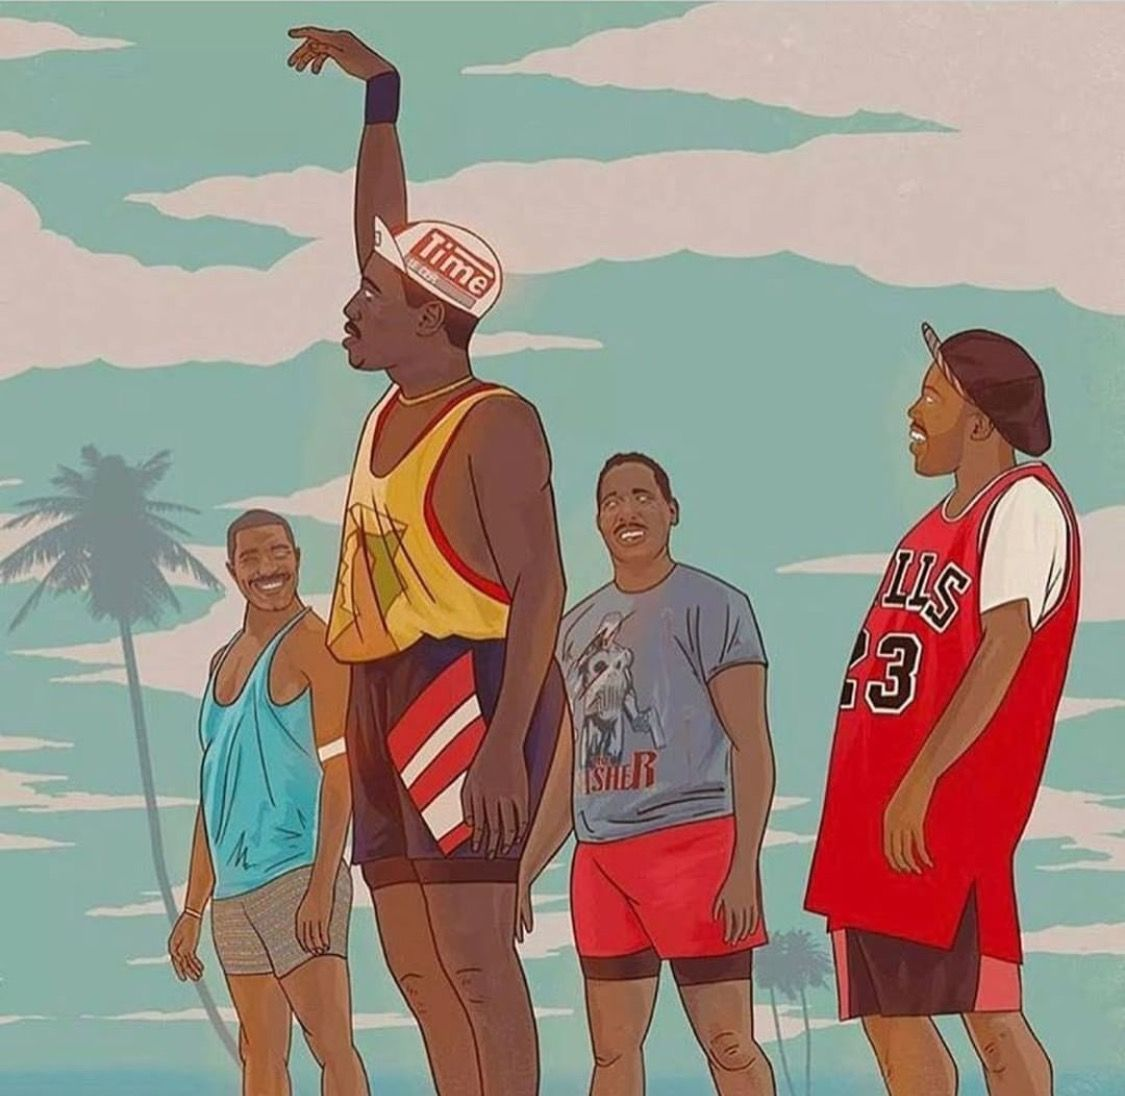 Classic movie. Great drawing! White men can't jump. About